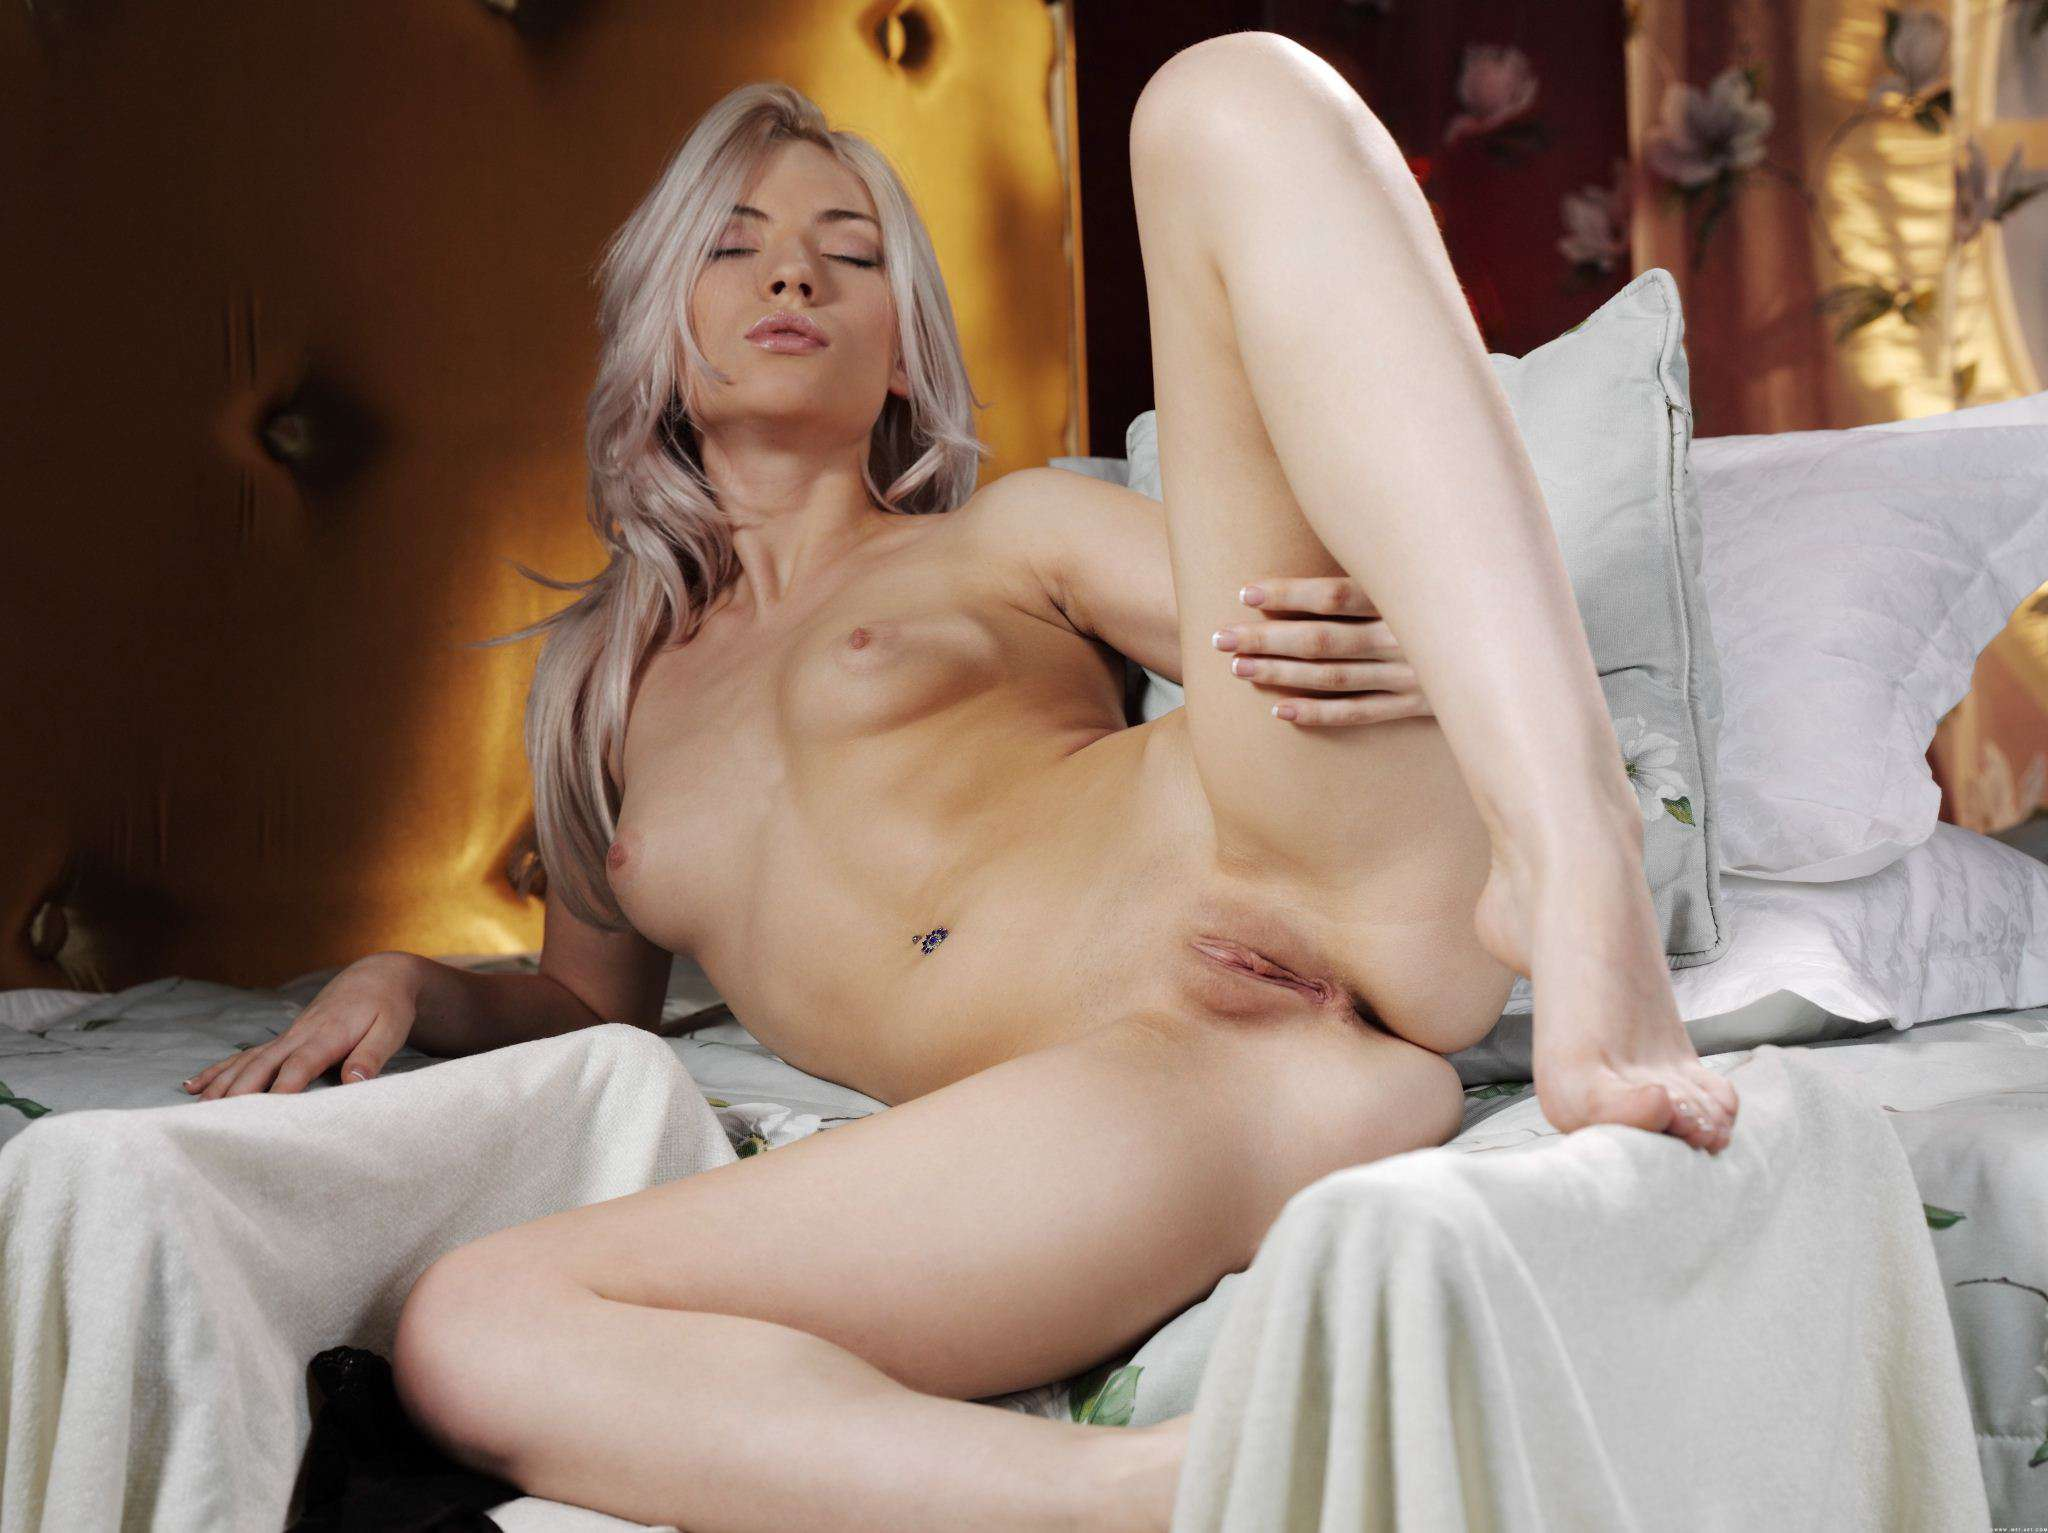 Naked Busty Adele Playing With Her Pussy